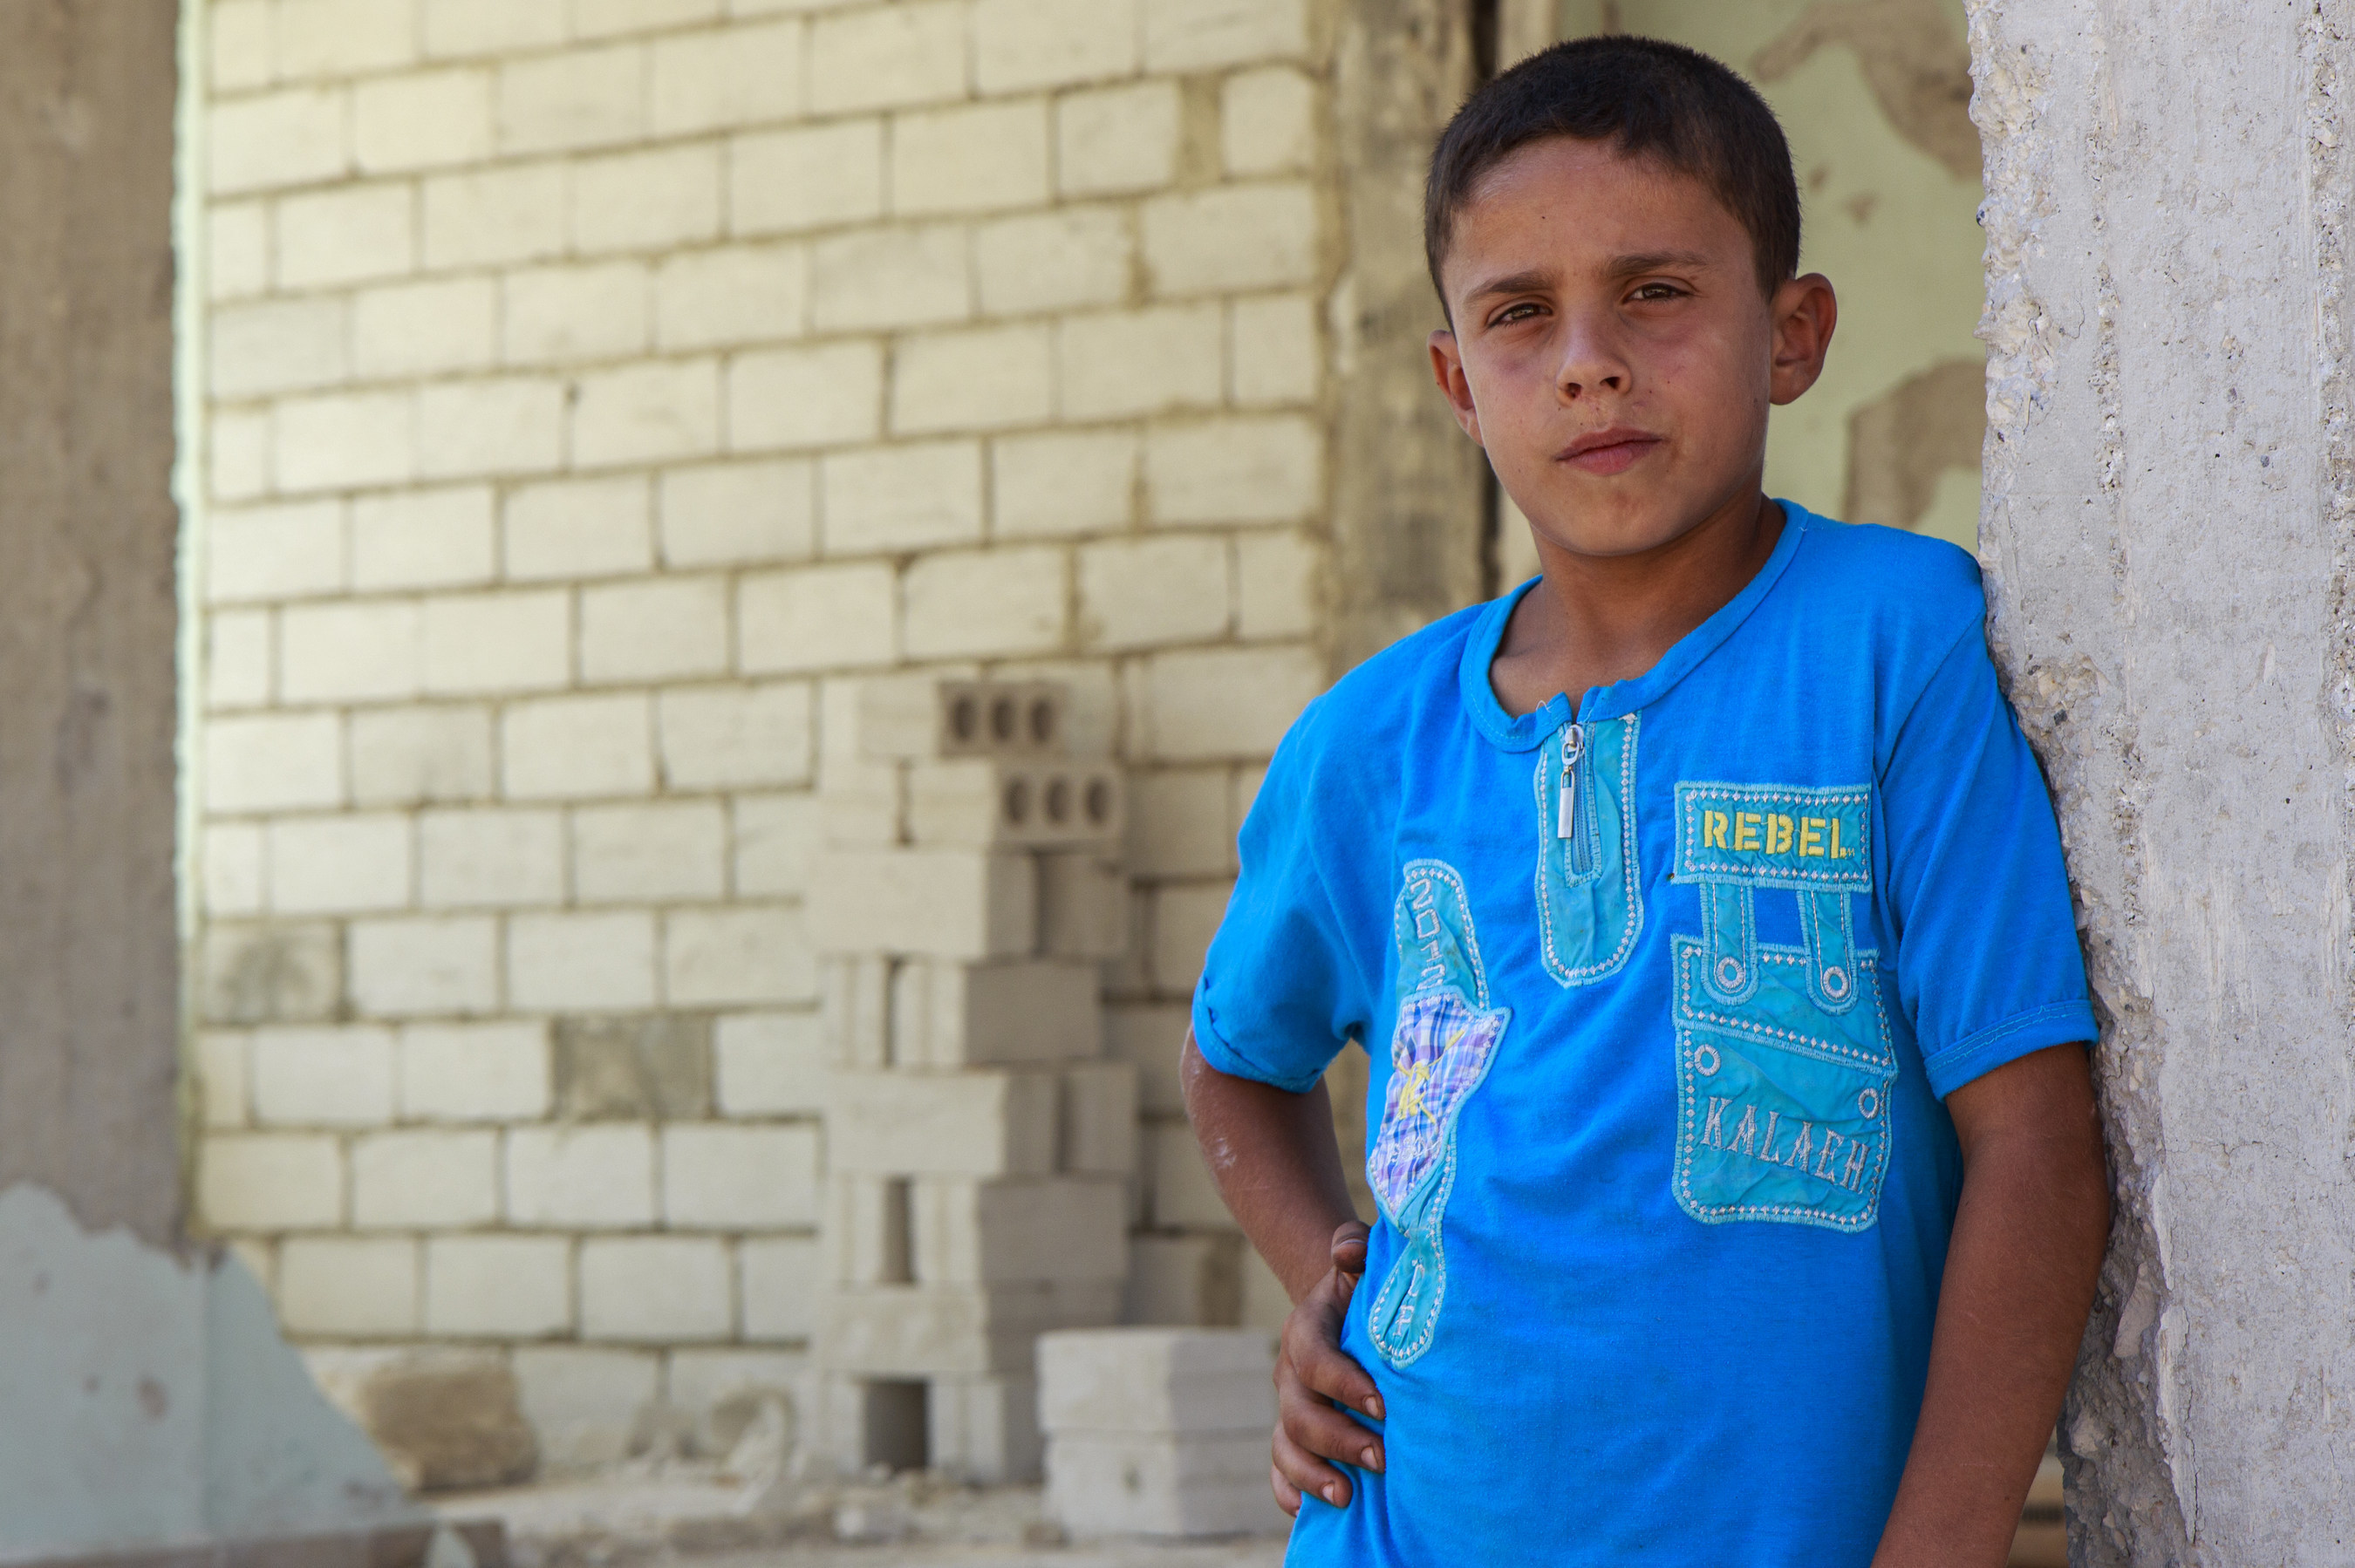 Kareem*'s school, in the suburbs of northern Syria, was attacked by missiles in March 2015, while he and his fellow classmates were at school. Photo by Ahmad Baroudi/Save the Children (* after a name indicates that the name has been changed to protect identity).